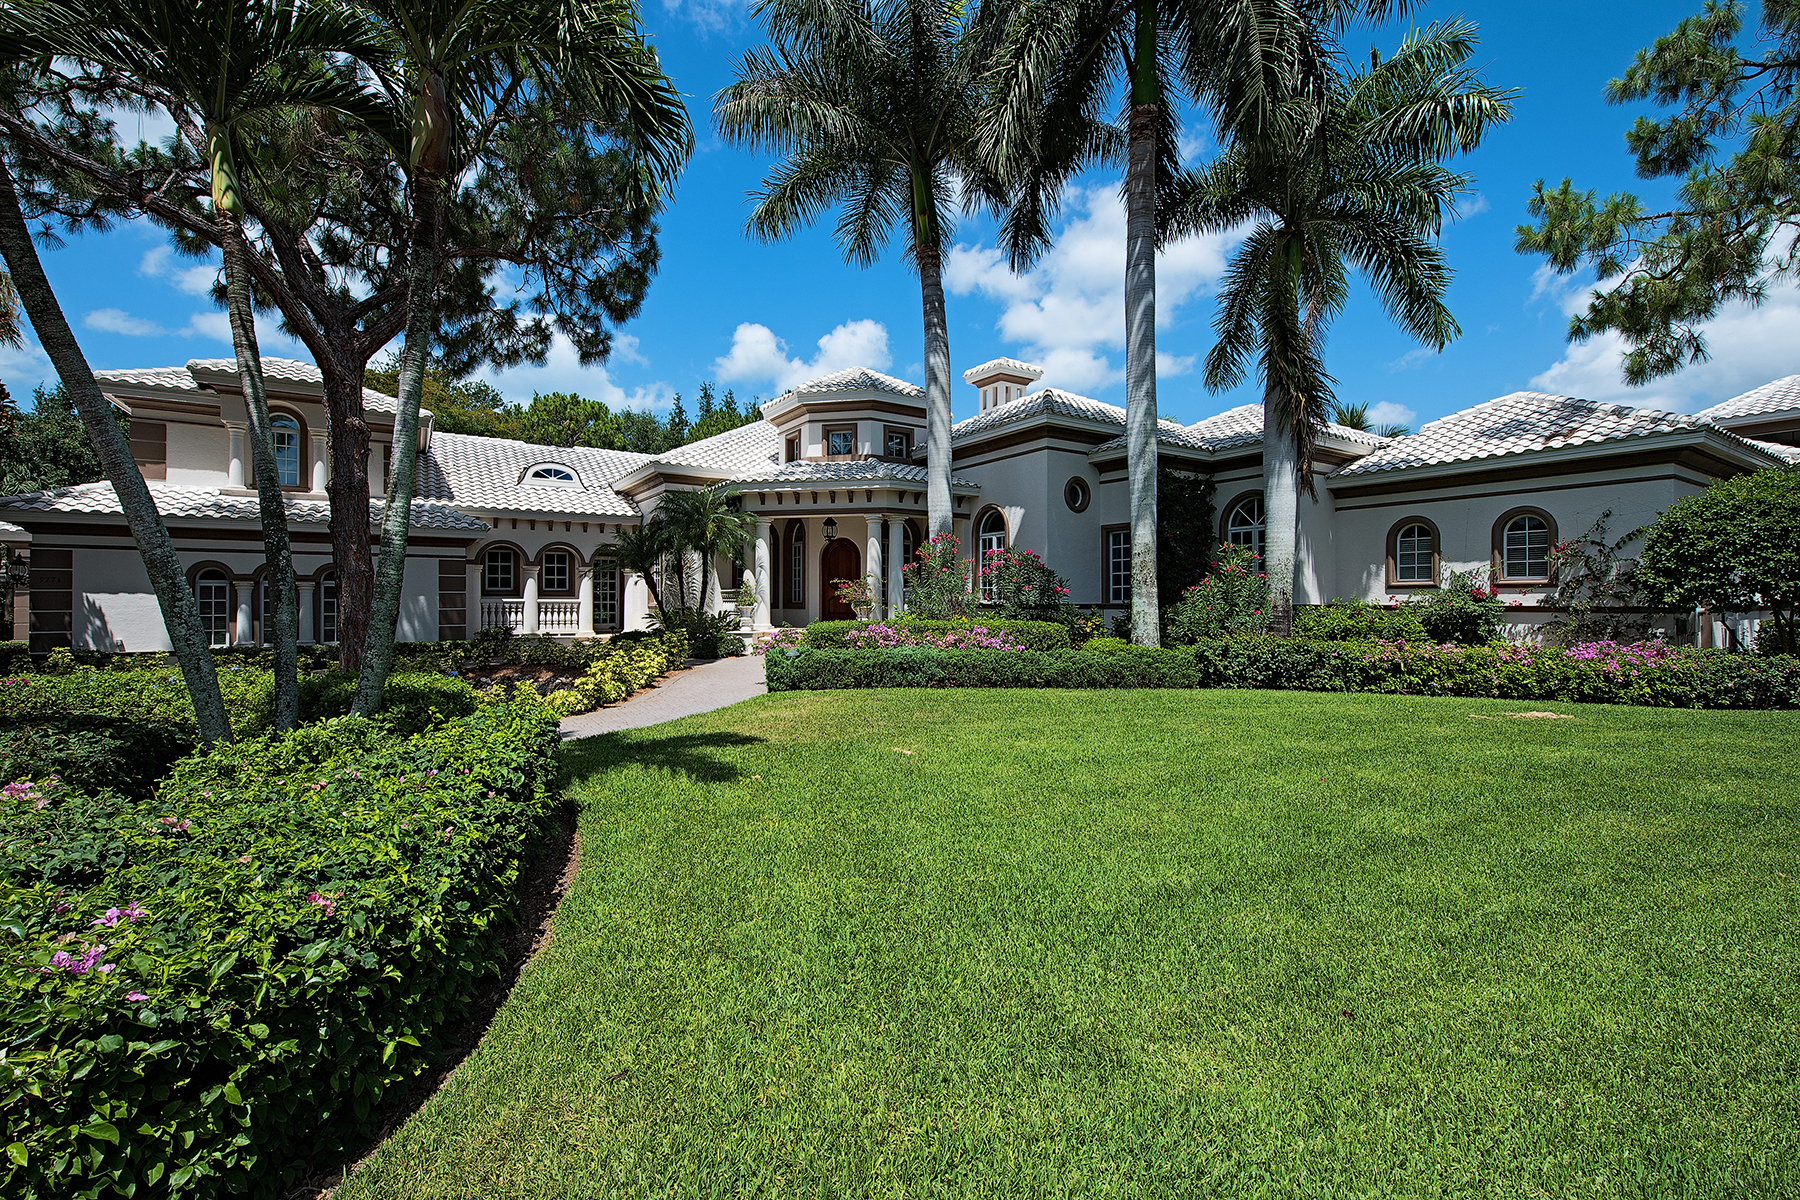 Villa per Vendita alle ore ESTATES AT BAY COLONY GOLF CLUB - PELICAN MARSH 9771 Niblick Ln Naples, Florida 34108 Stati Uniti